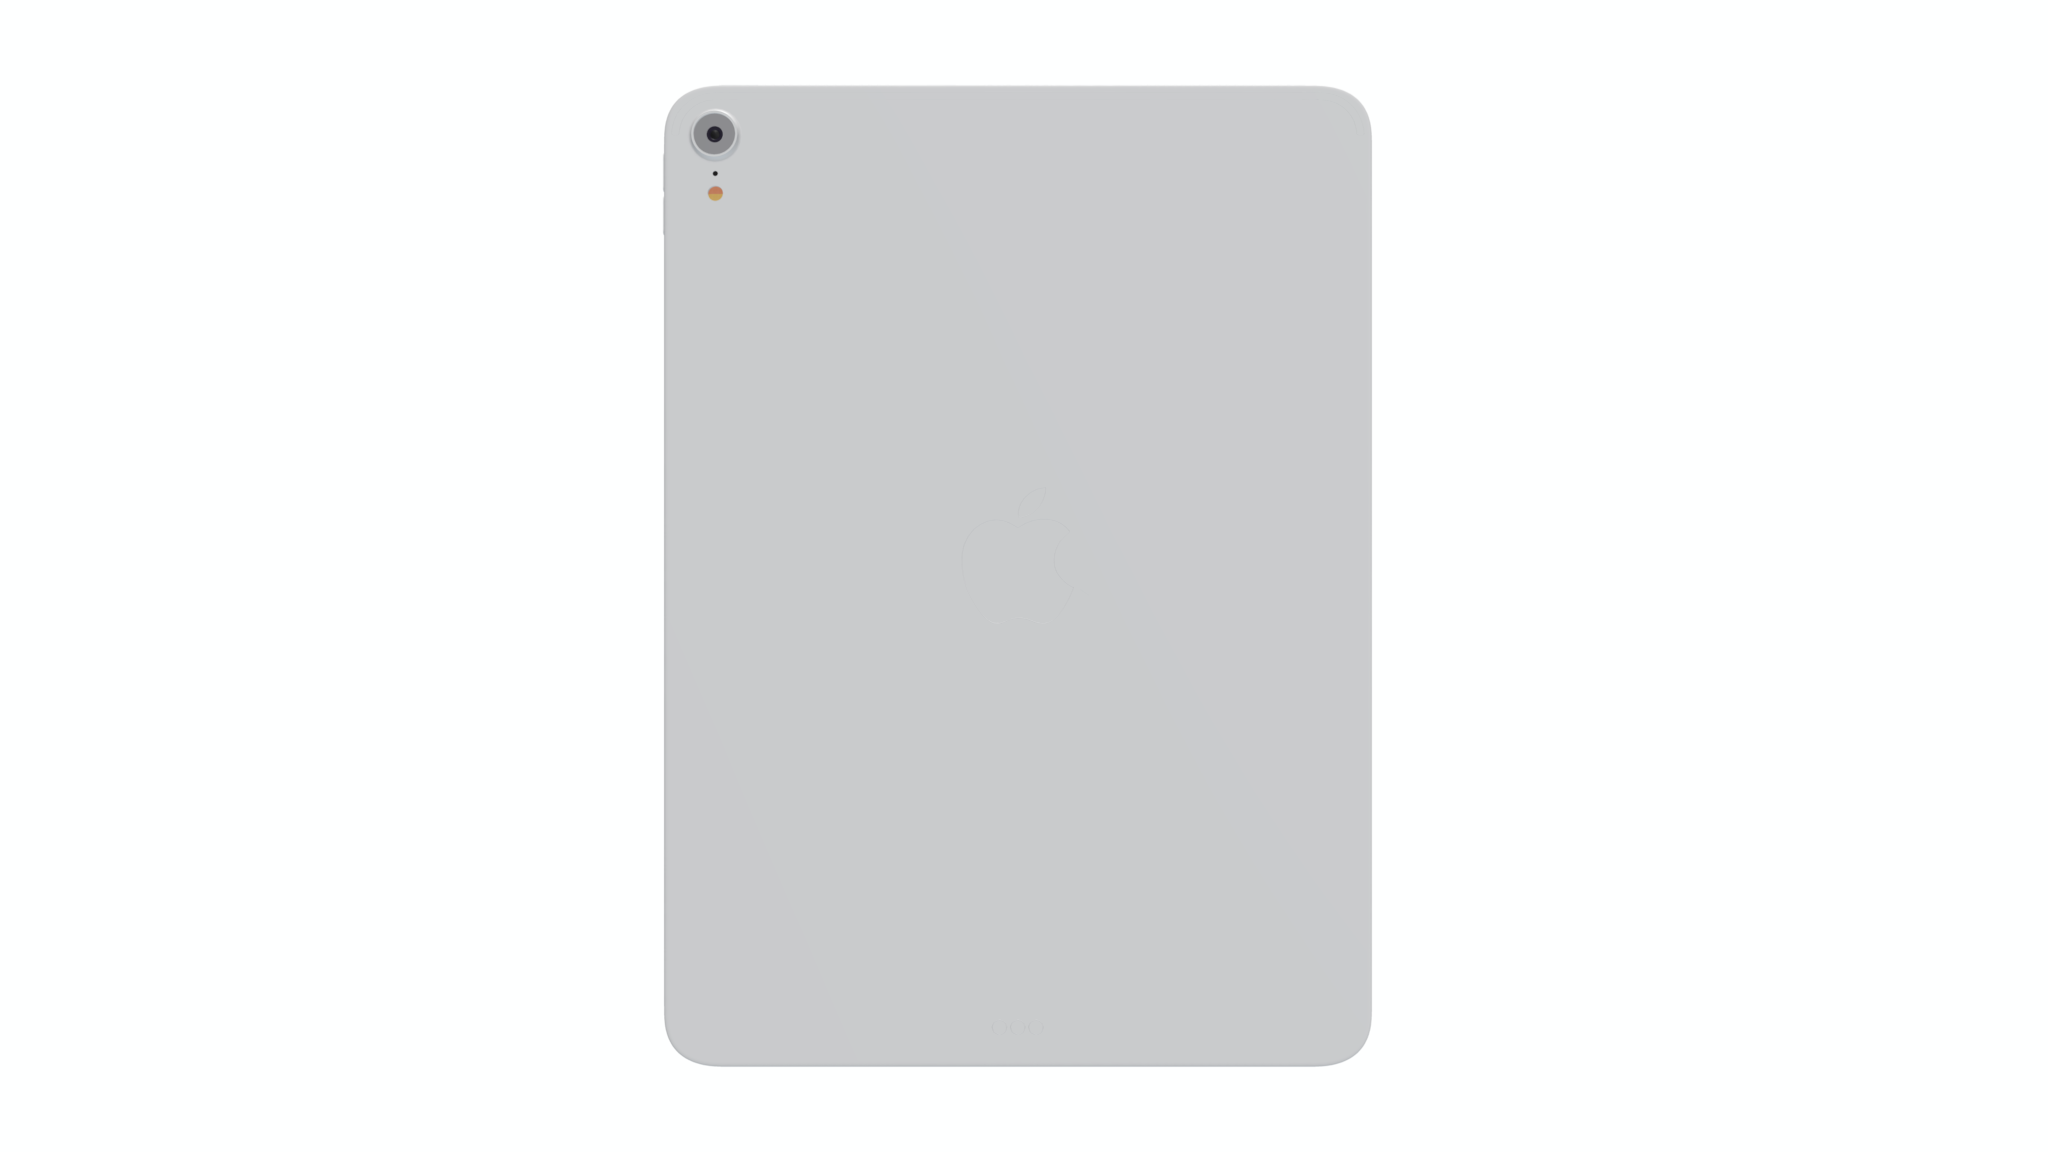 iPad mockup in white, back view